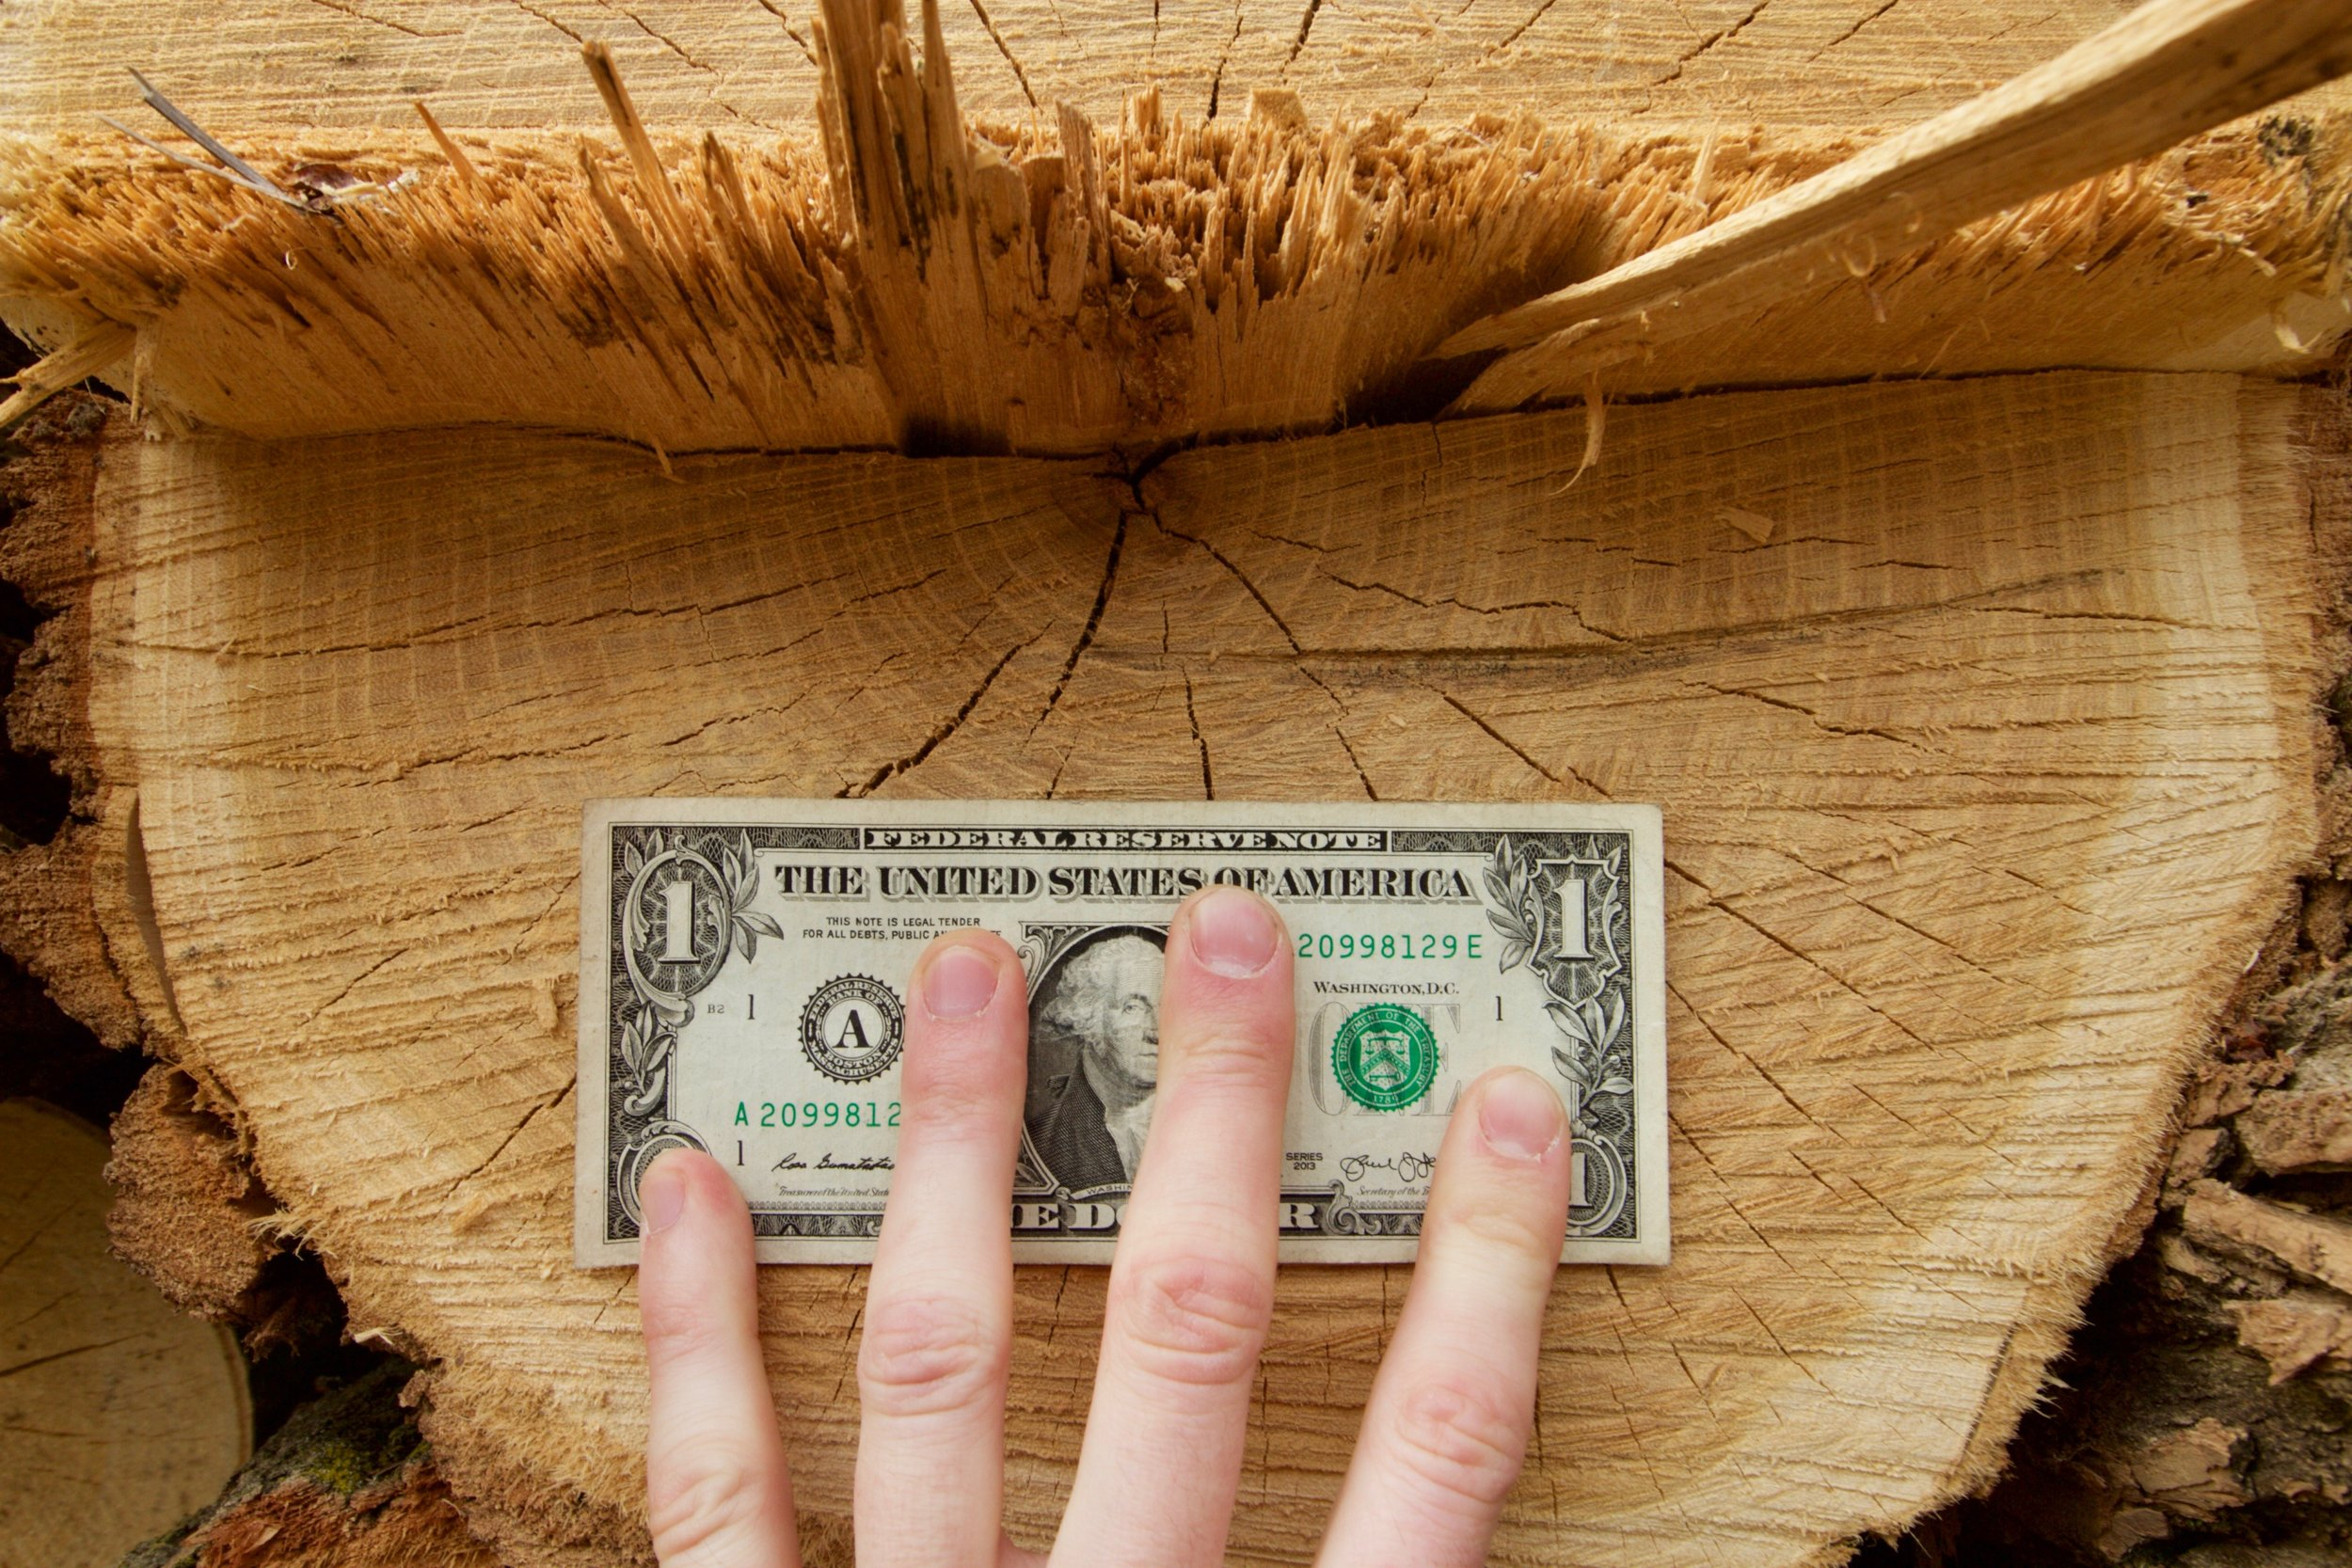 If we plant 100 black locust trees today, and mill them into lumber in 2035, what is that net income worth to us in today's dollars? These are the questions we must ask to de-risk agroforestry.